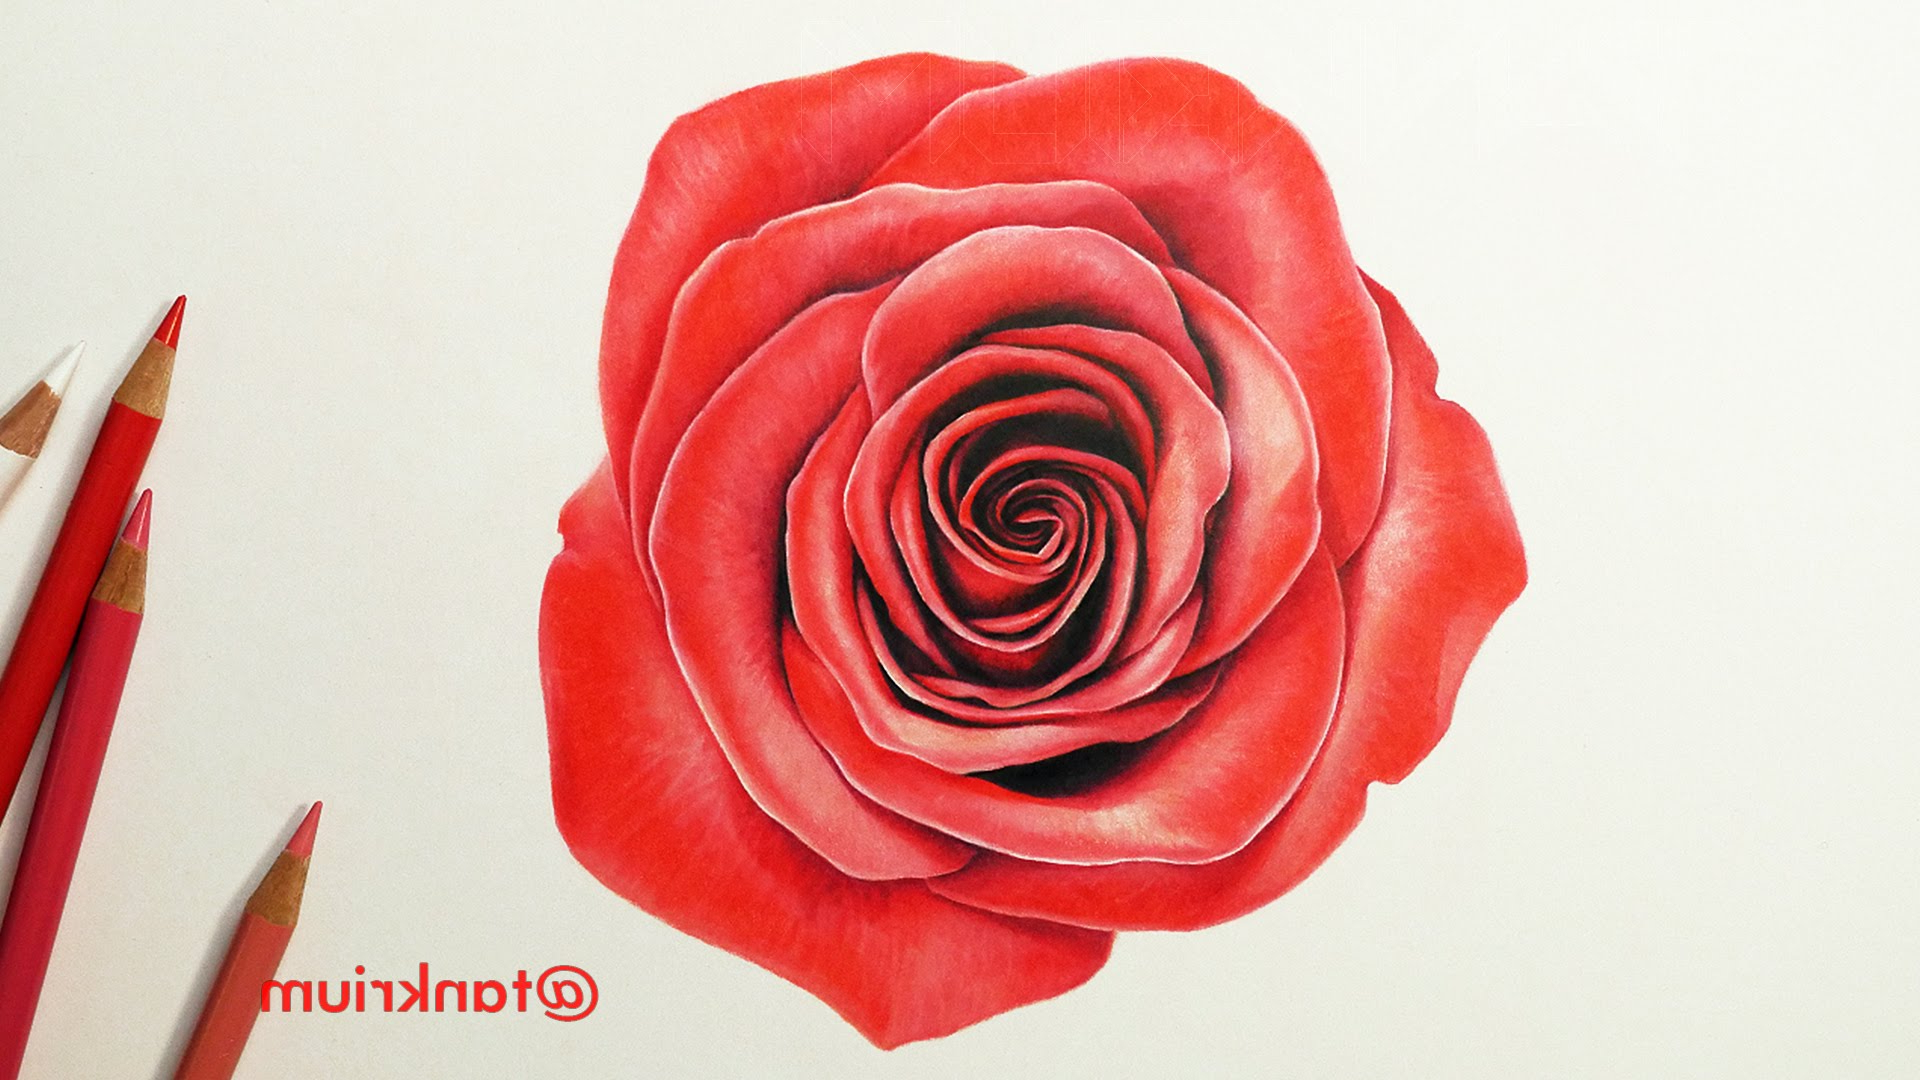 1920x1080 Colored Pencil Drawings Of Red Roses Drawing A Rose With Colored